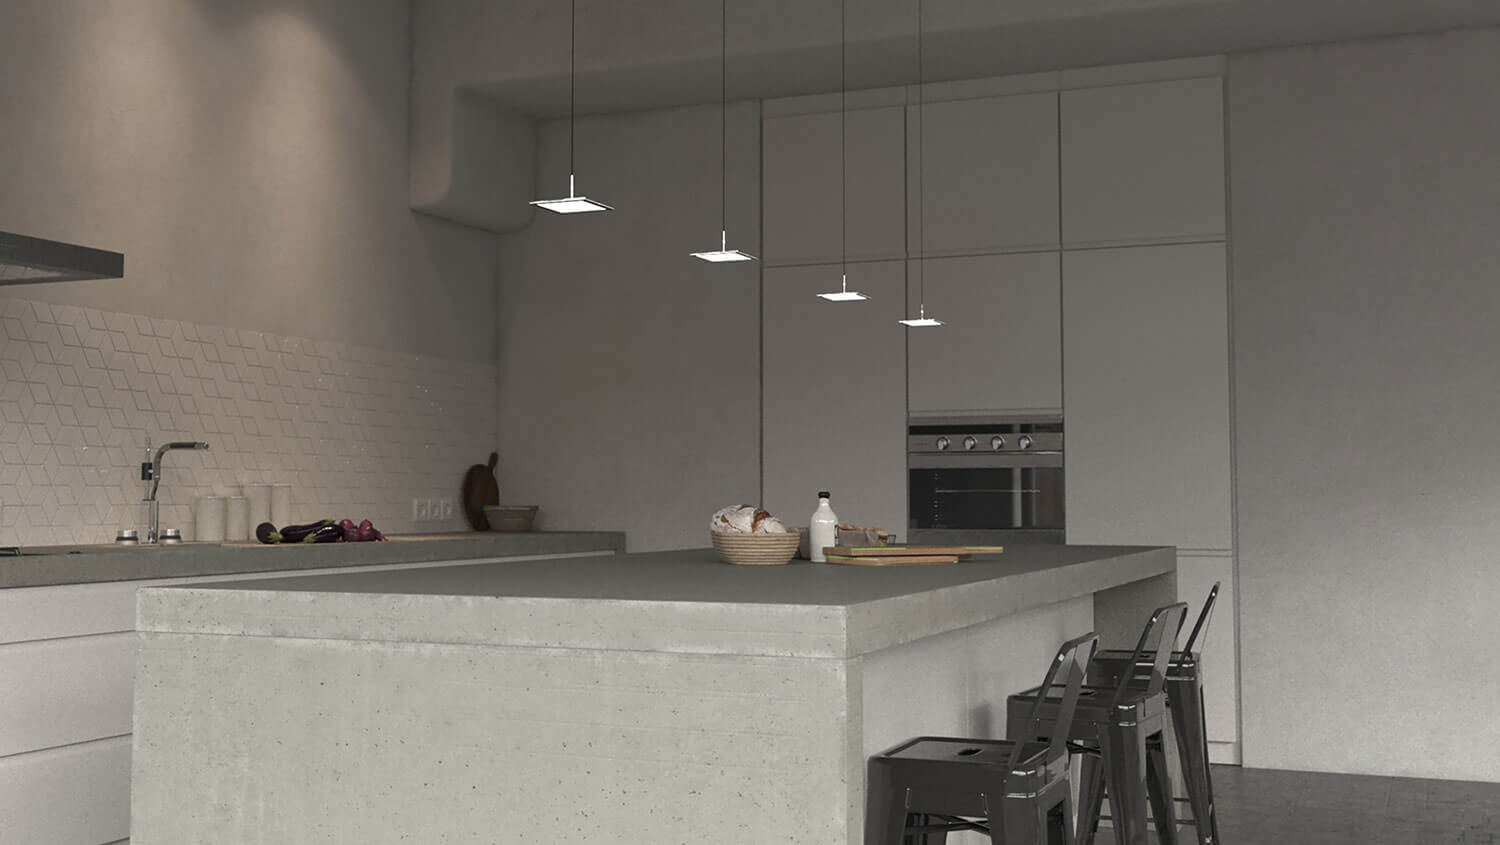 Four OLED fixtures Zhens in kitchen